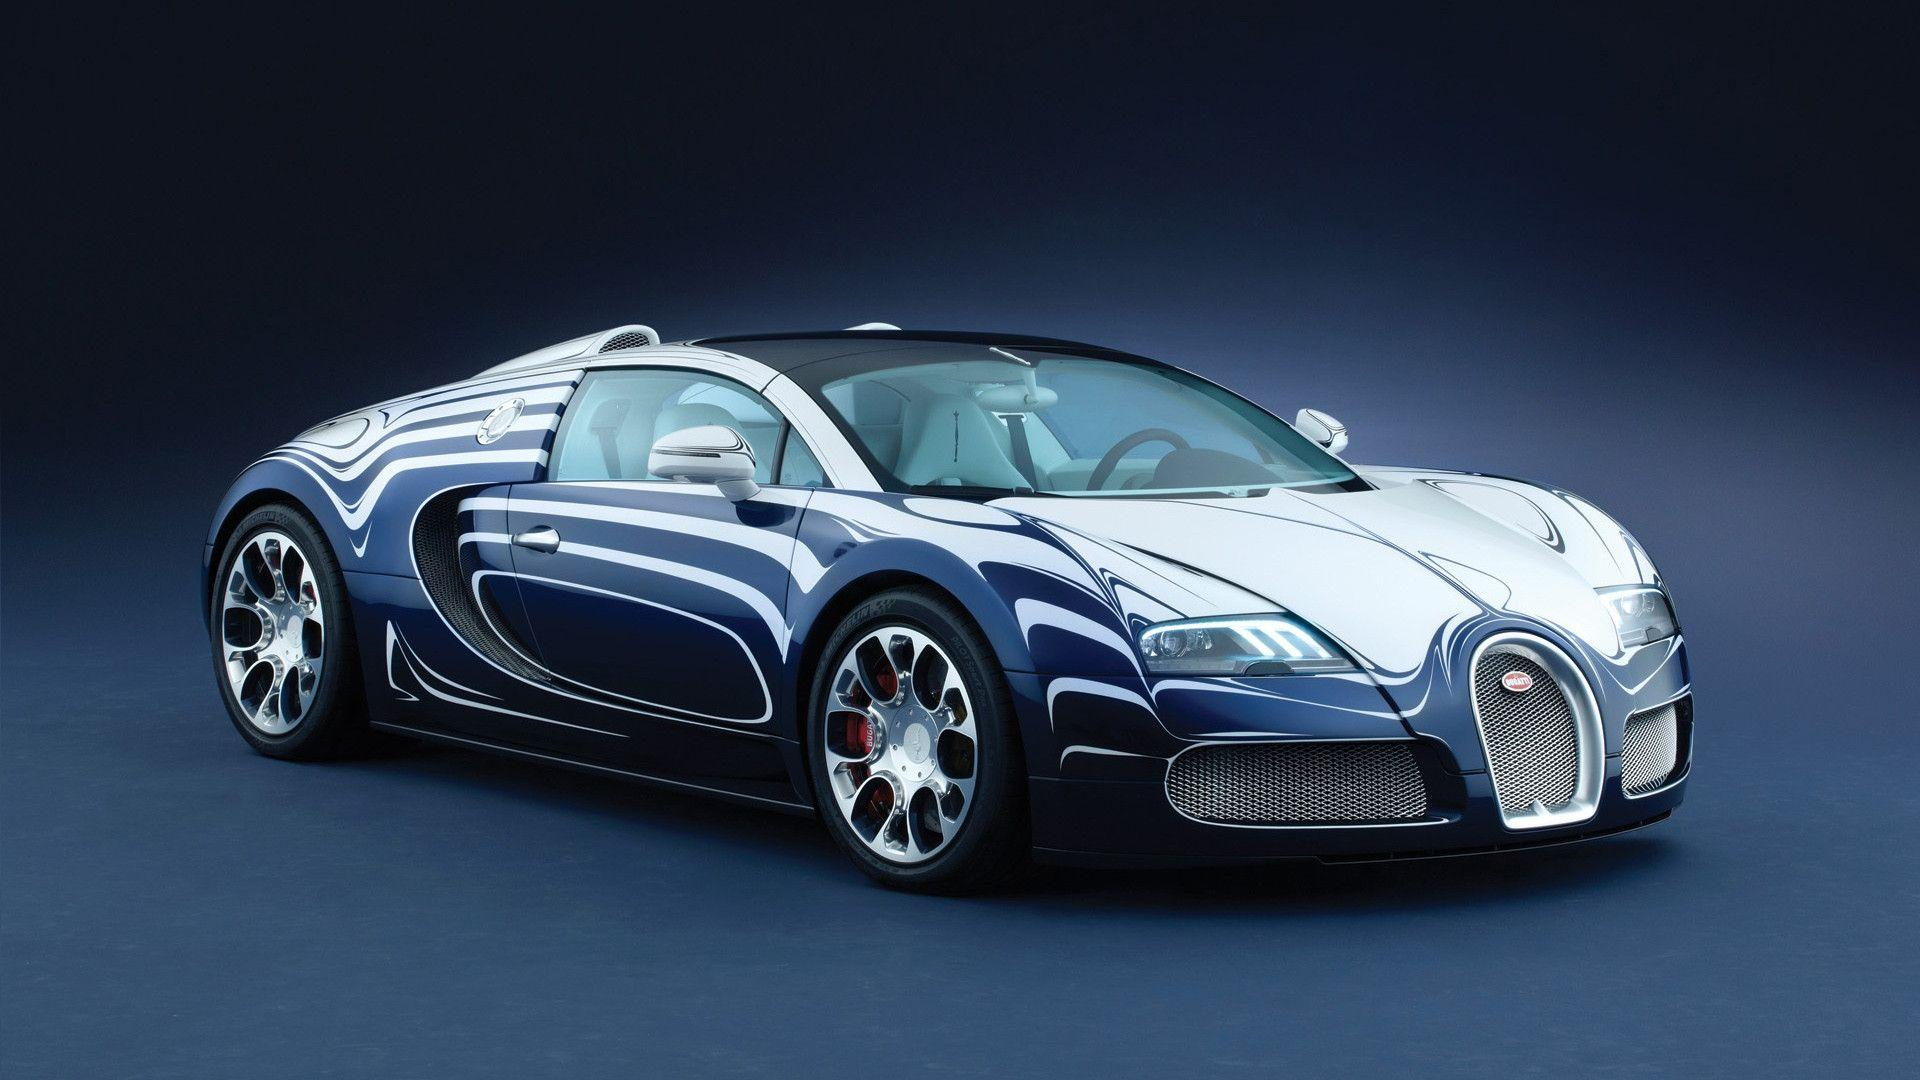 Nothing Found For Bugatti Veyron Super Sports Cars 1080P Hd ..